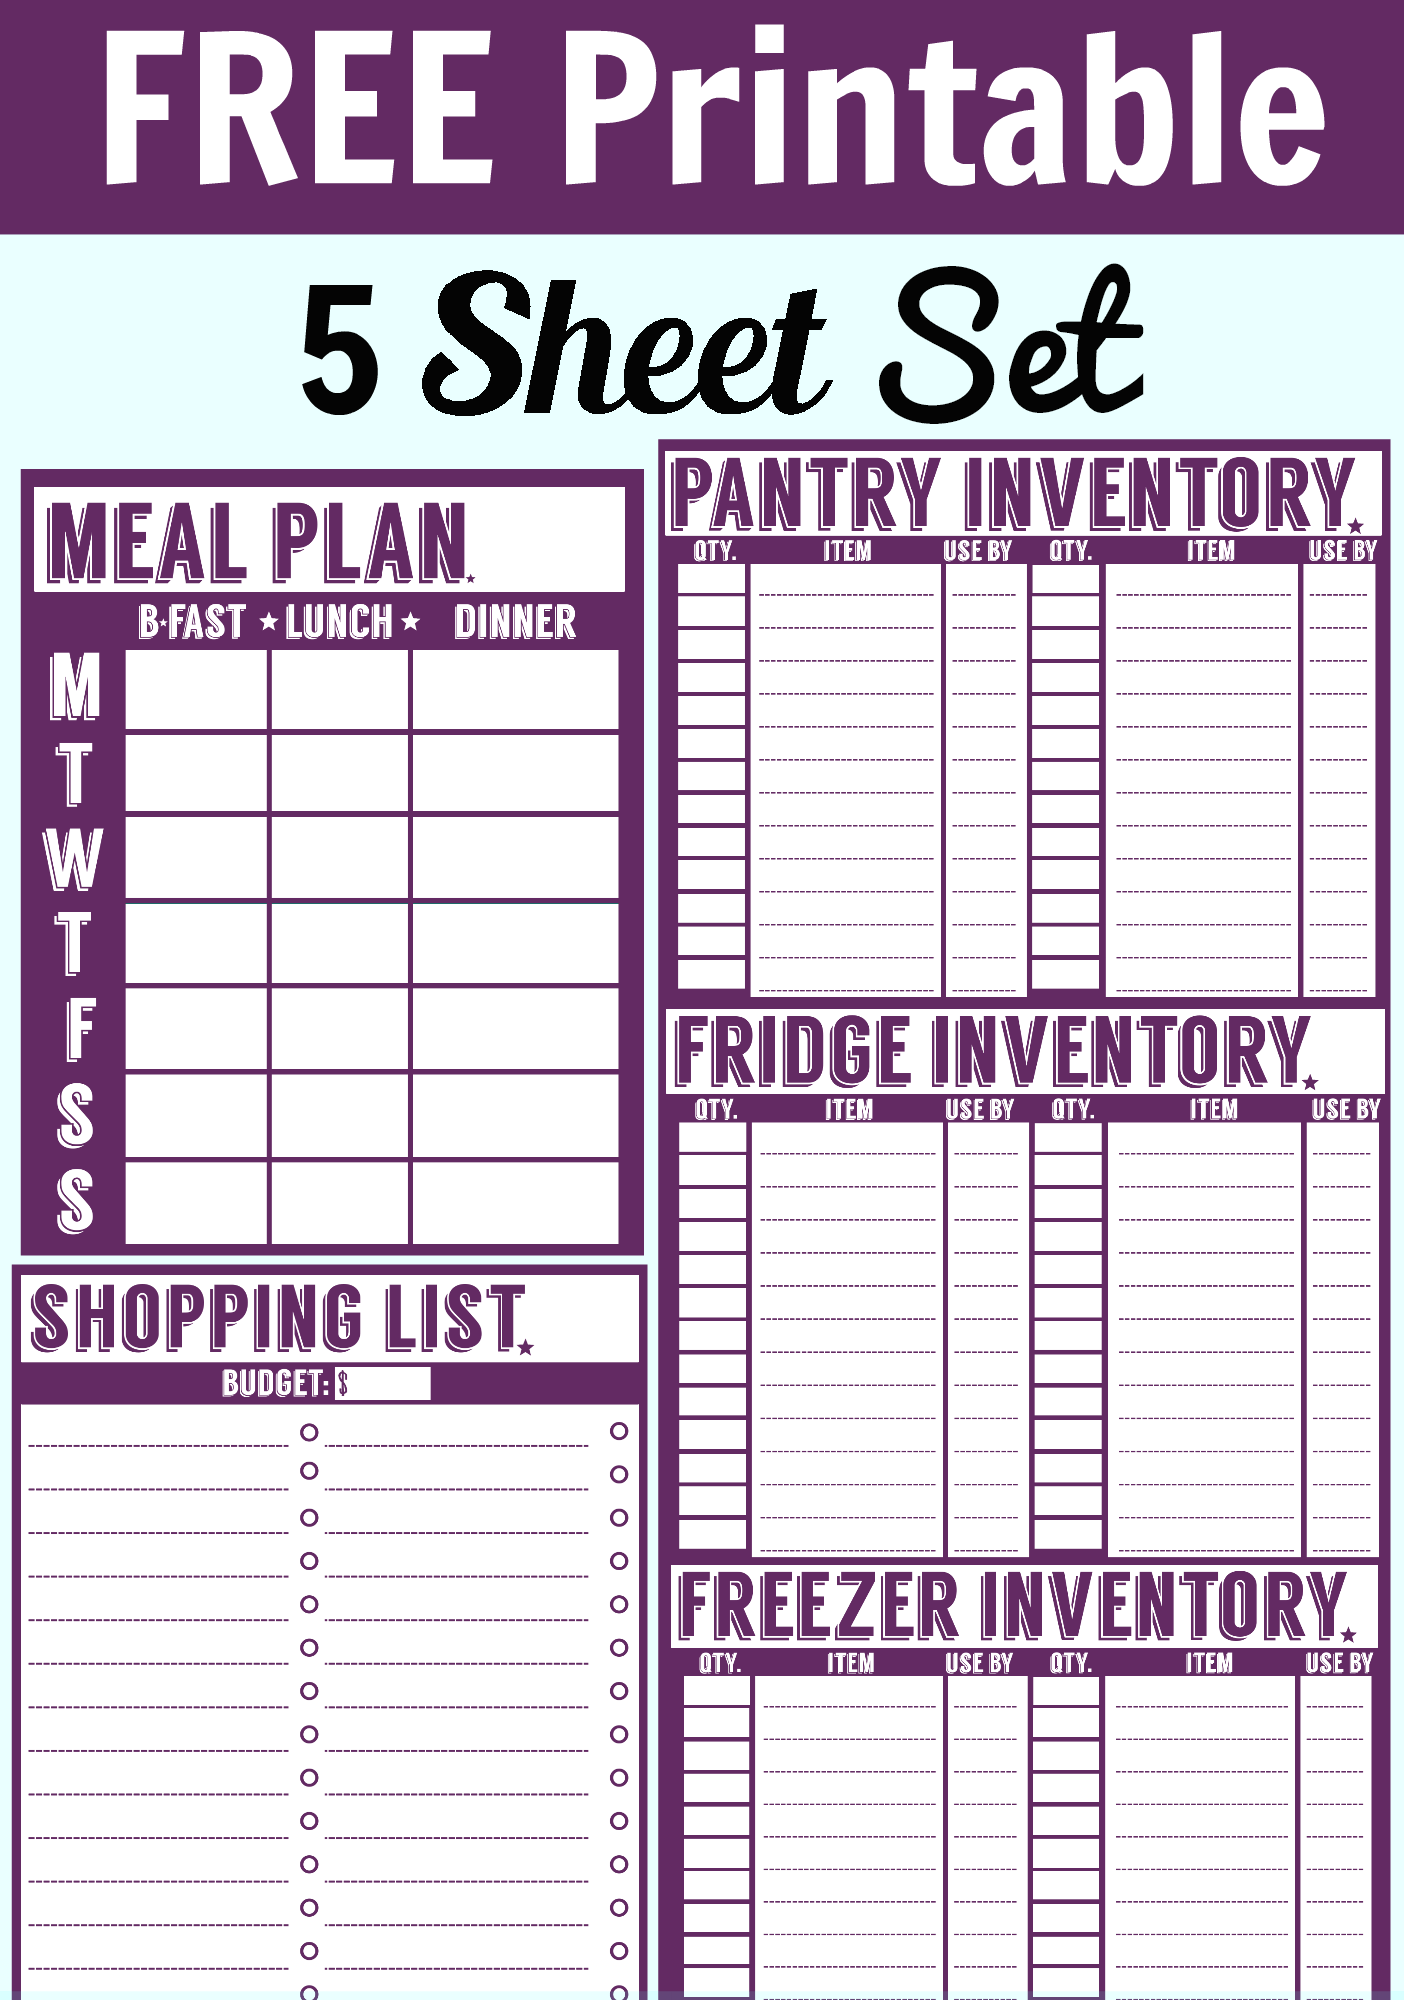 inventory sheet, freezer inventory sheet, and fridge inventory sheet ...